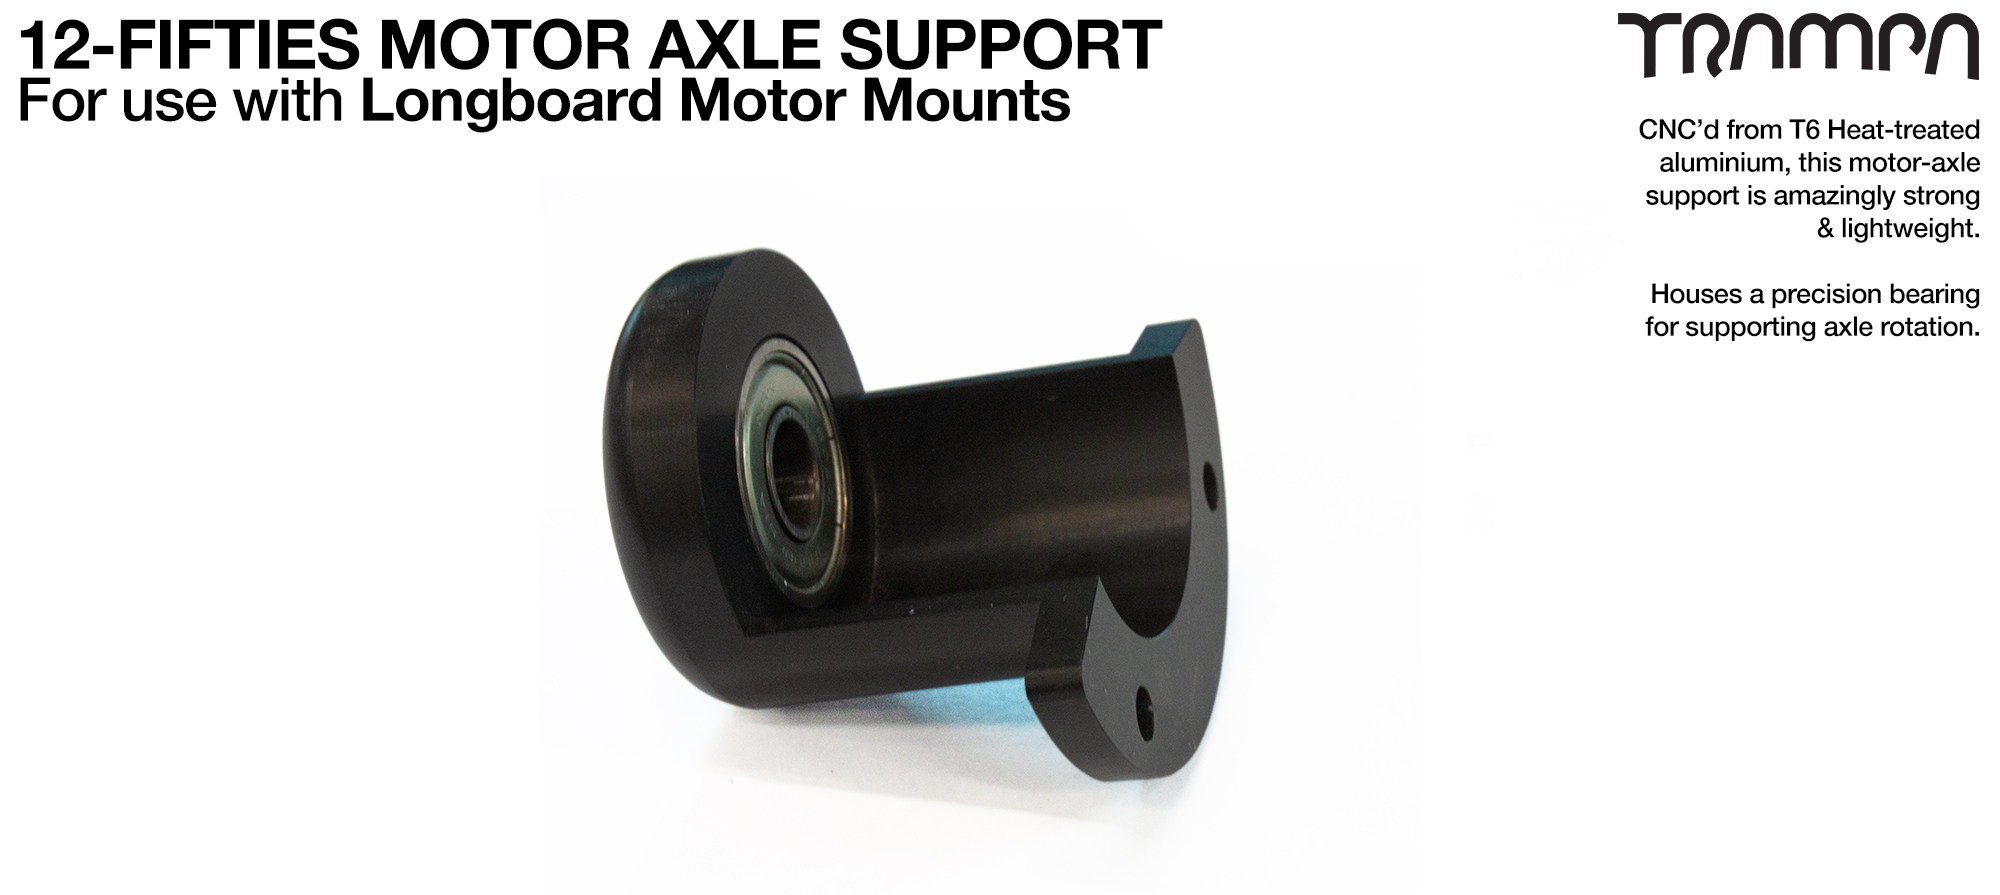 Motor Axle Support for 12FIFTIES Trucks Motor Mount